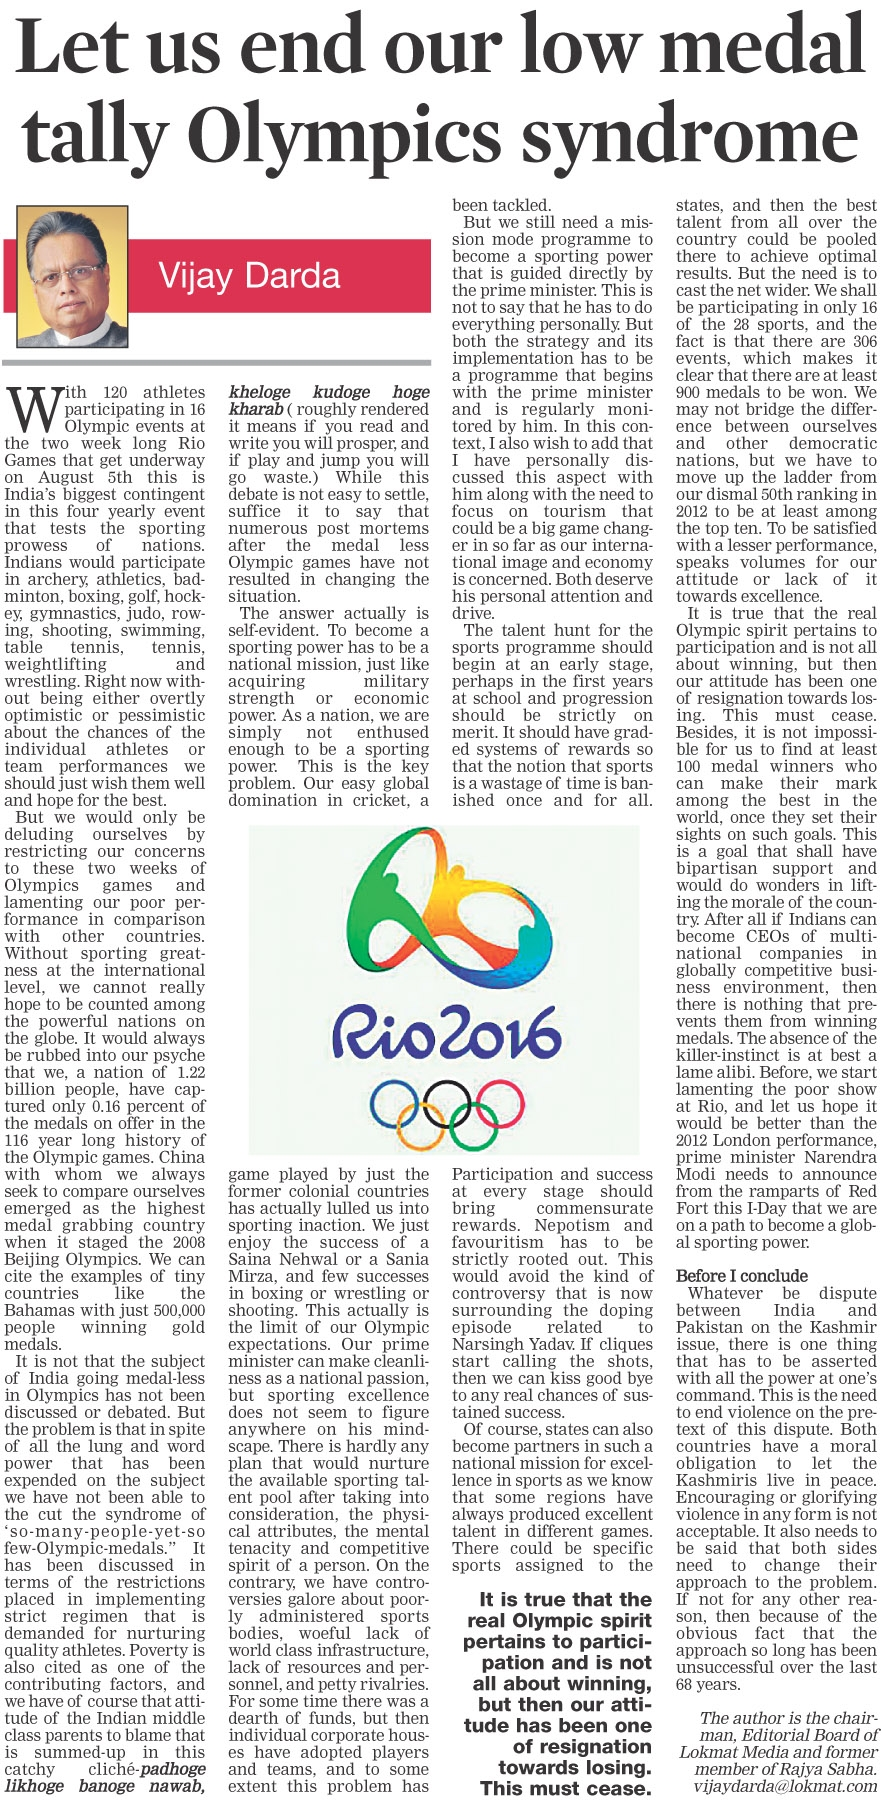 Let us end our low medal tally Olympics syndrome